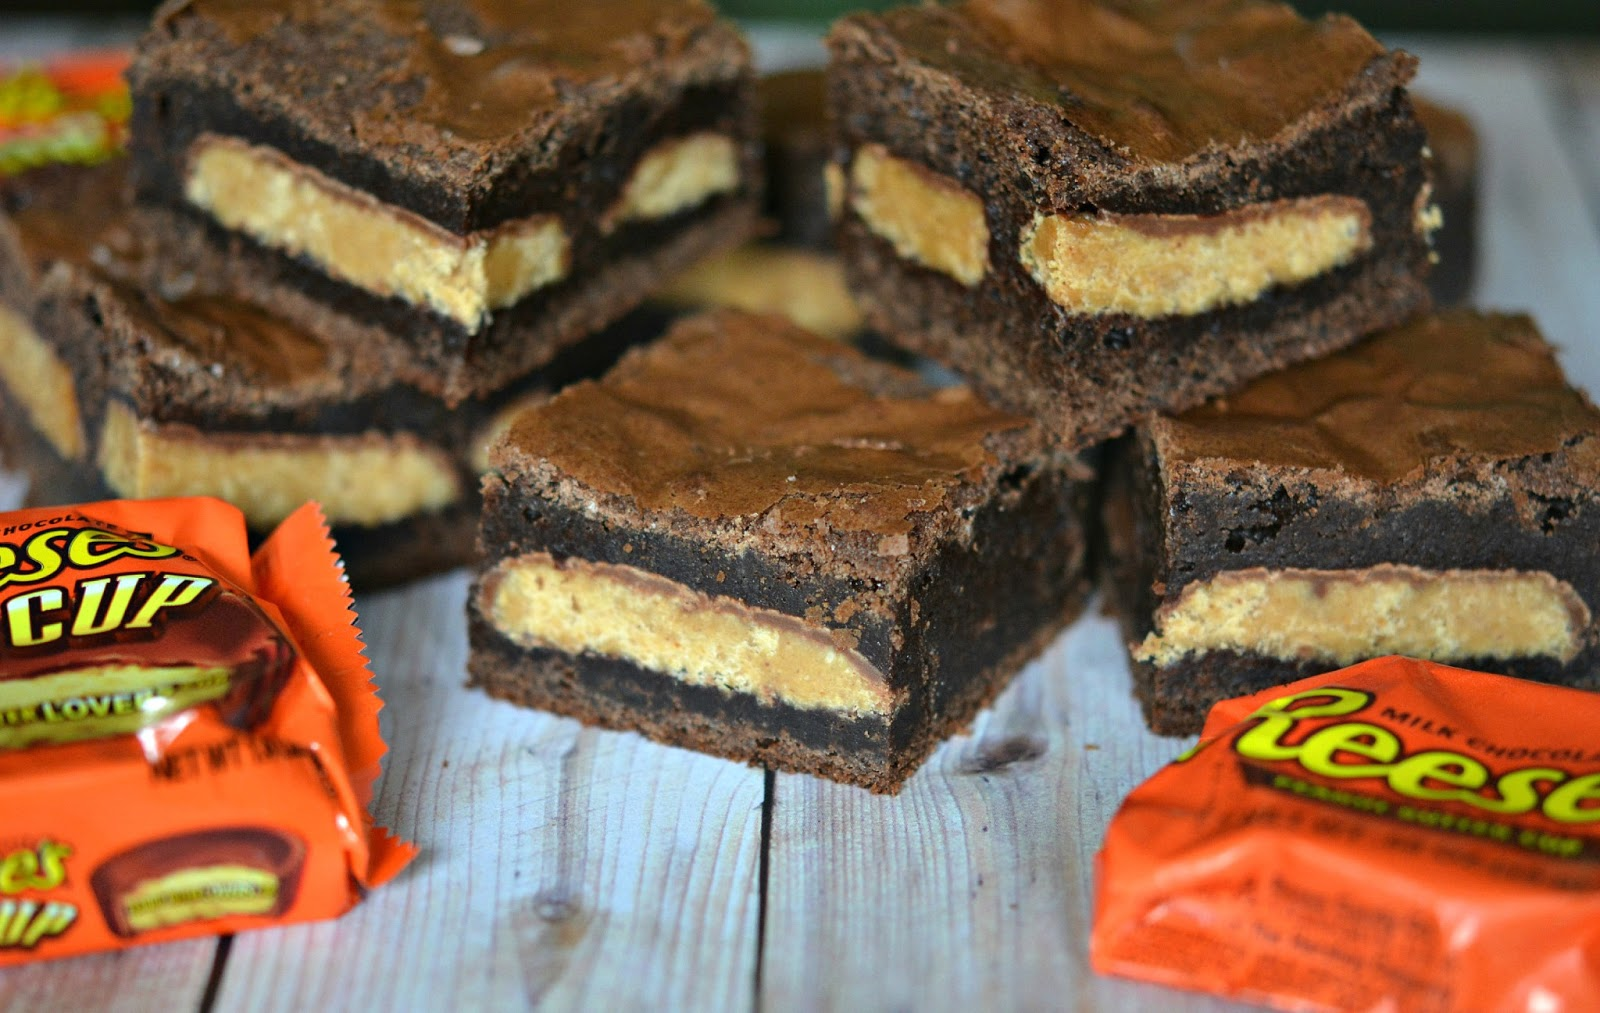 ... STUFFED WITH REESE'S PEANUT BUTTER CUPS! - Hugs and Cookies XOXO